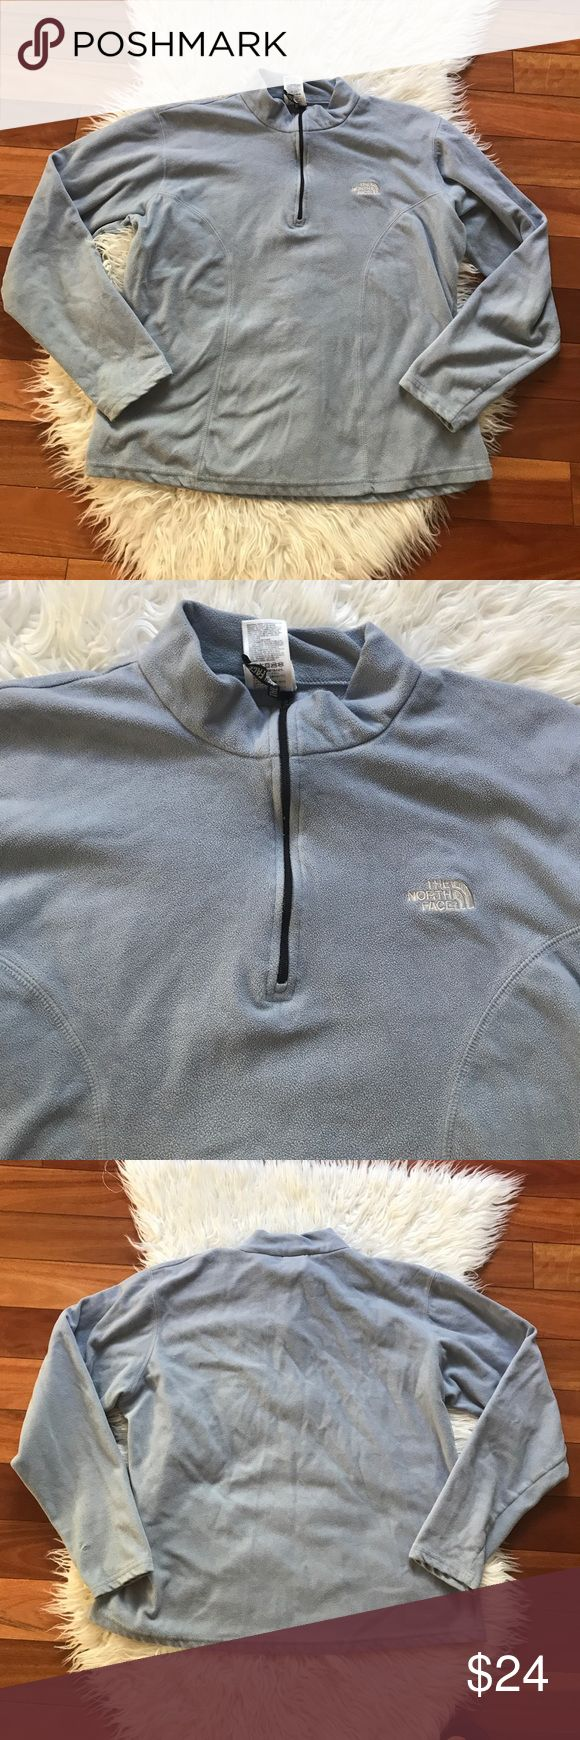 Great condition North Face half zip sweater Still in great condition half zip sweater by north face. Only flaw is right bottom sleeve has a small harden rip. Not noticeable when worn. North Face Sweaters Crew & Scoop Necks